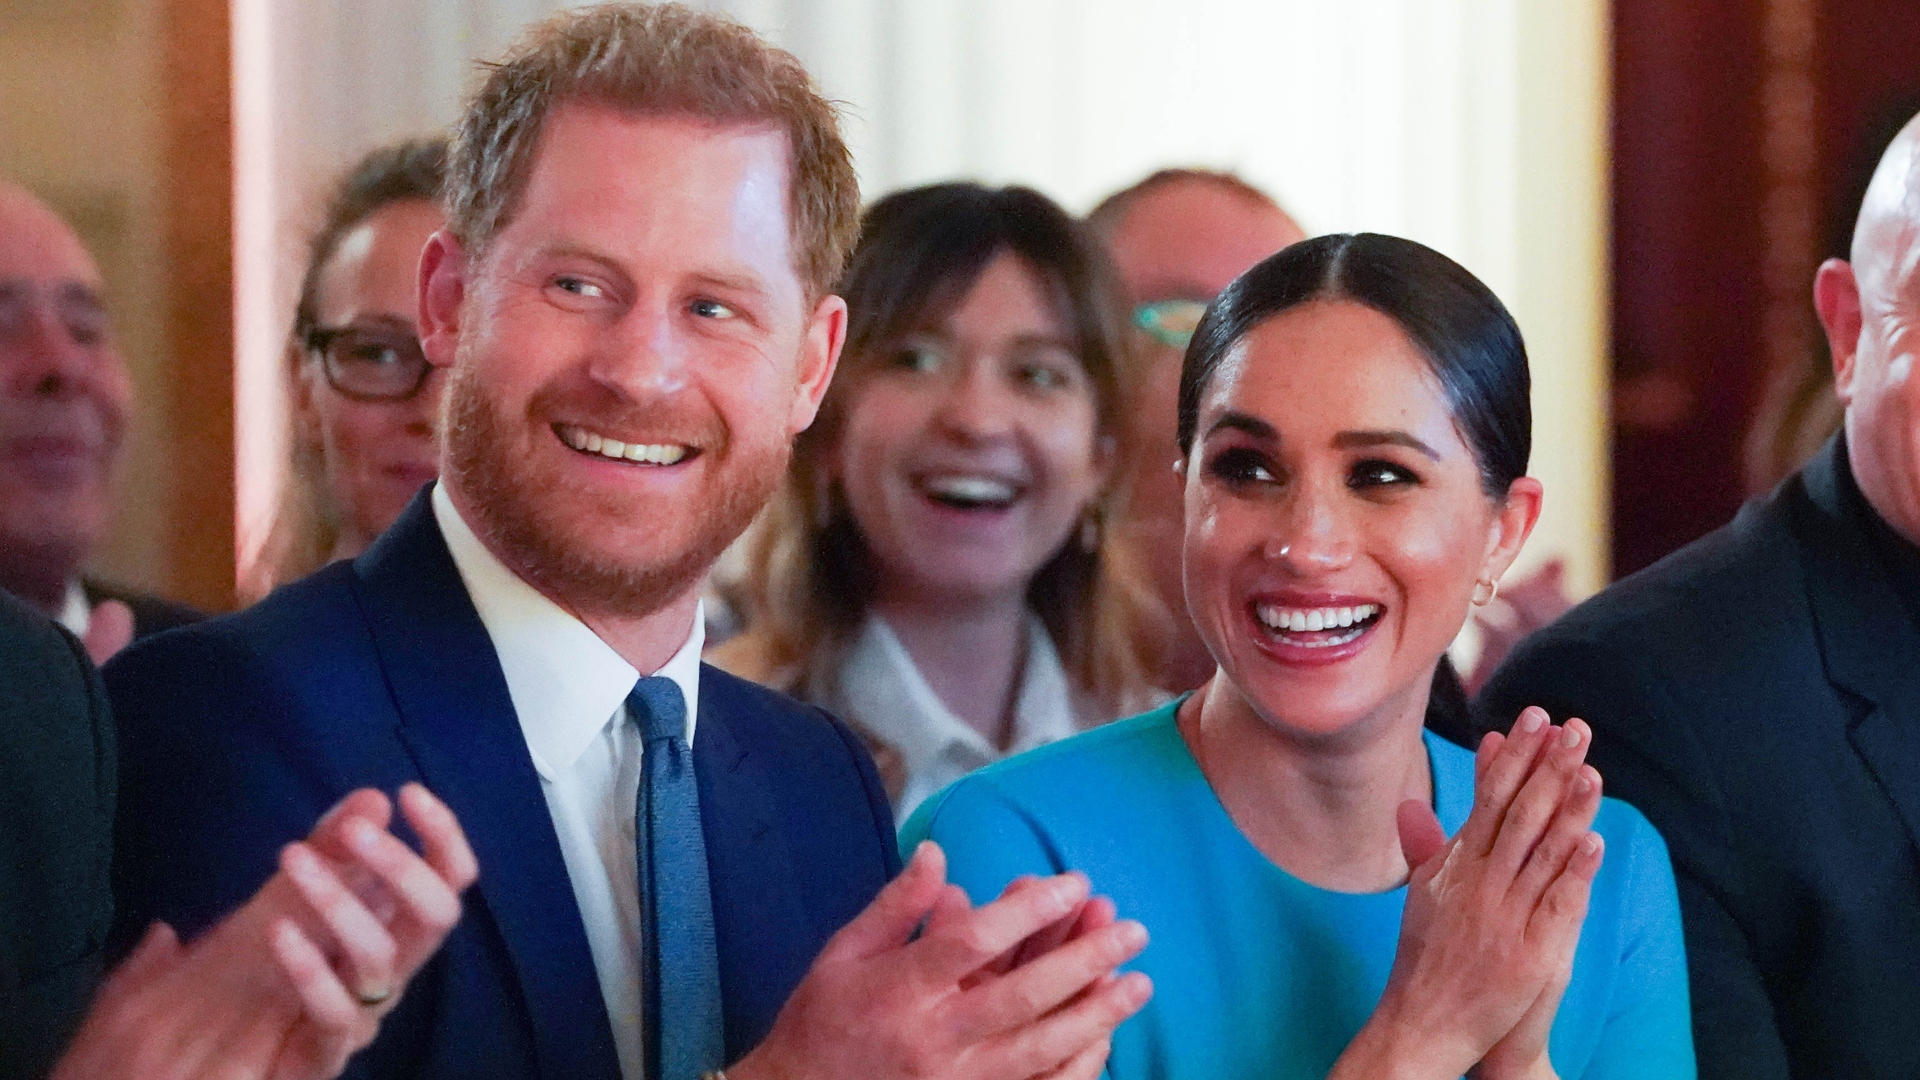 This Meghan Markle Slip-Up with the Royal Family Even Had Prince Harry Cringing